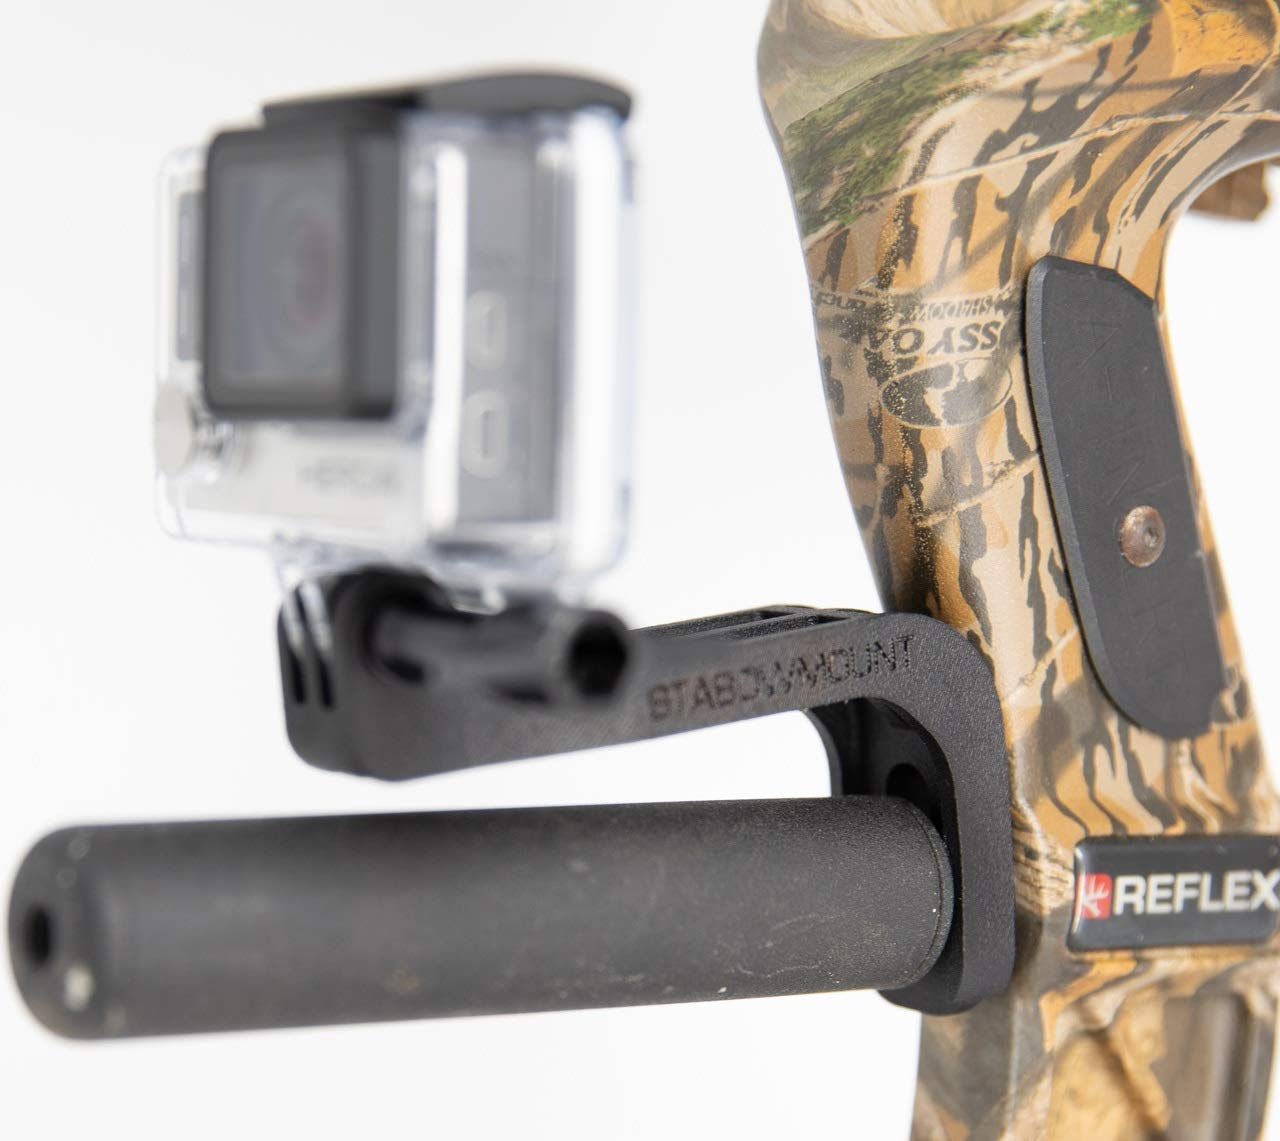 StaBowMount - Camera Mount for your Compound Bow by StaBowMount